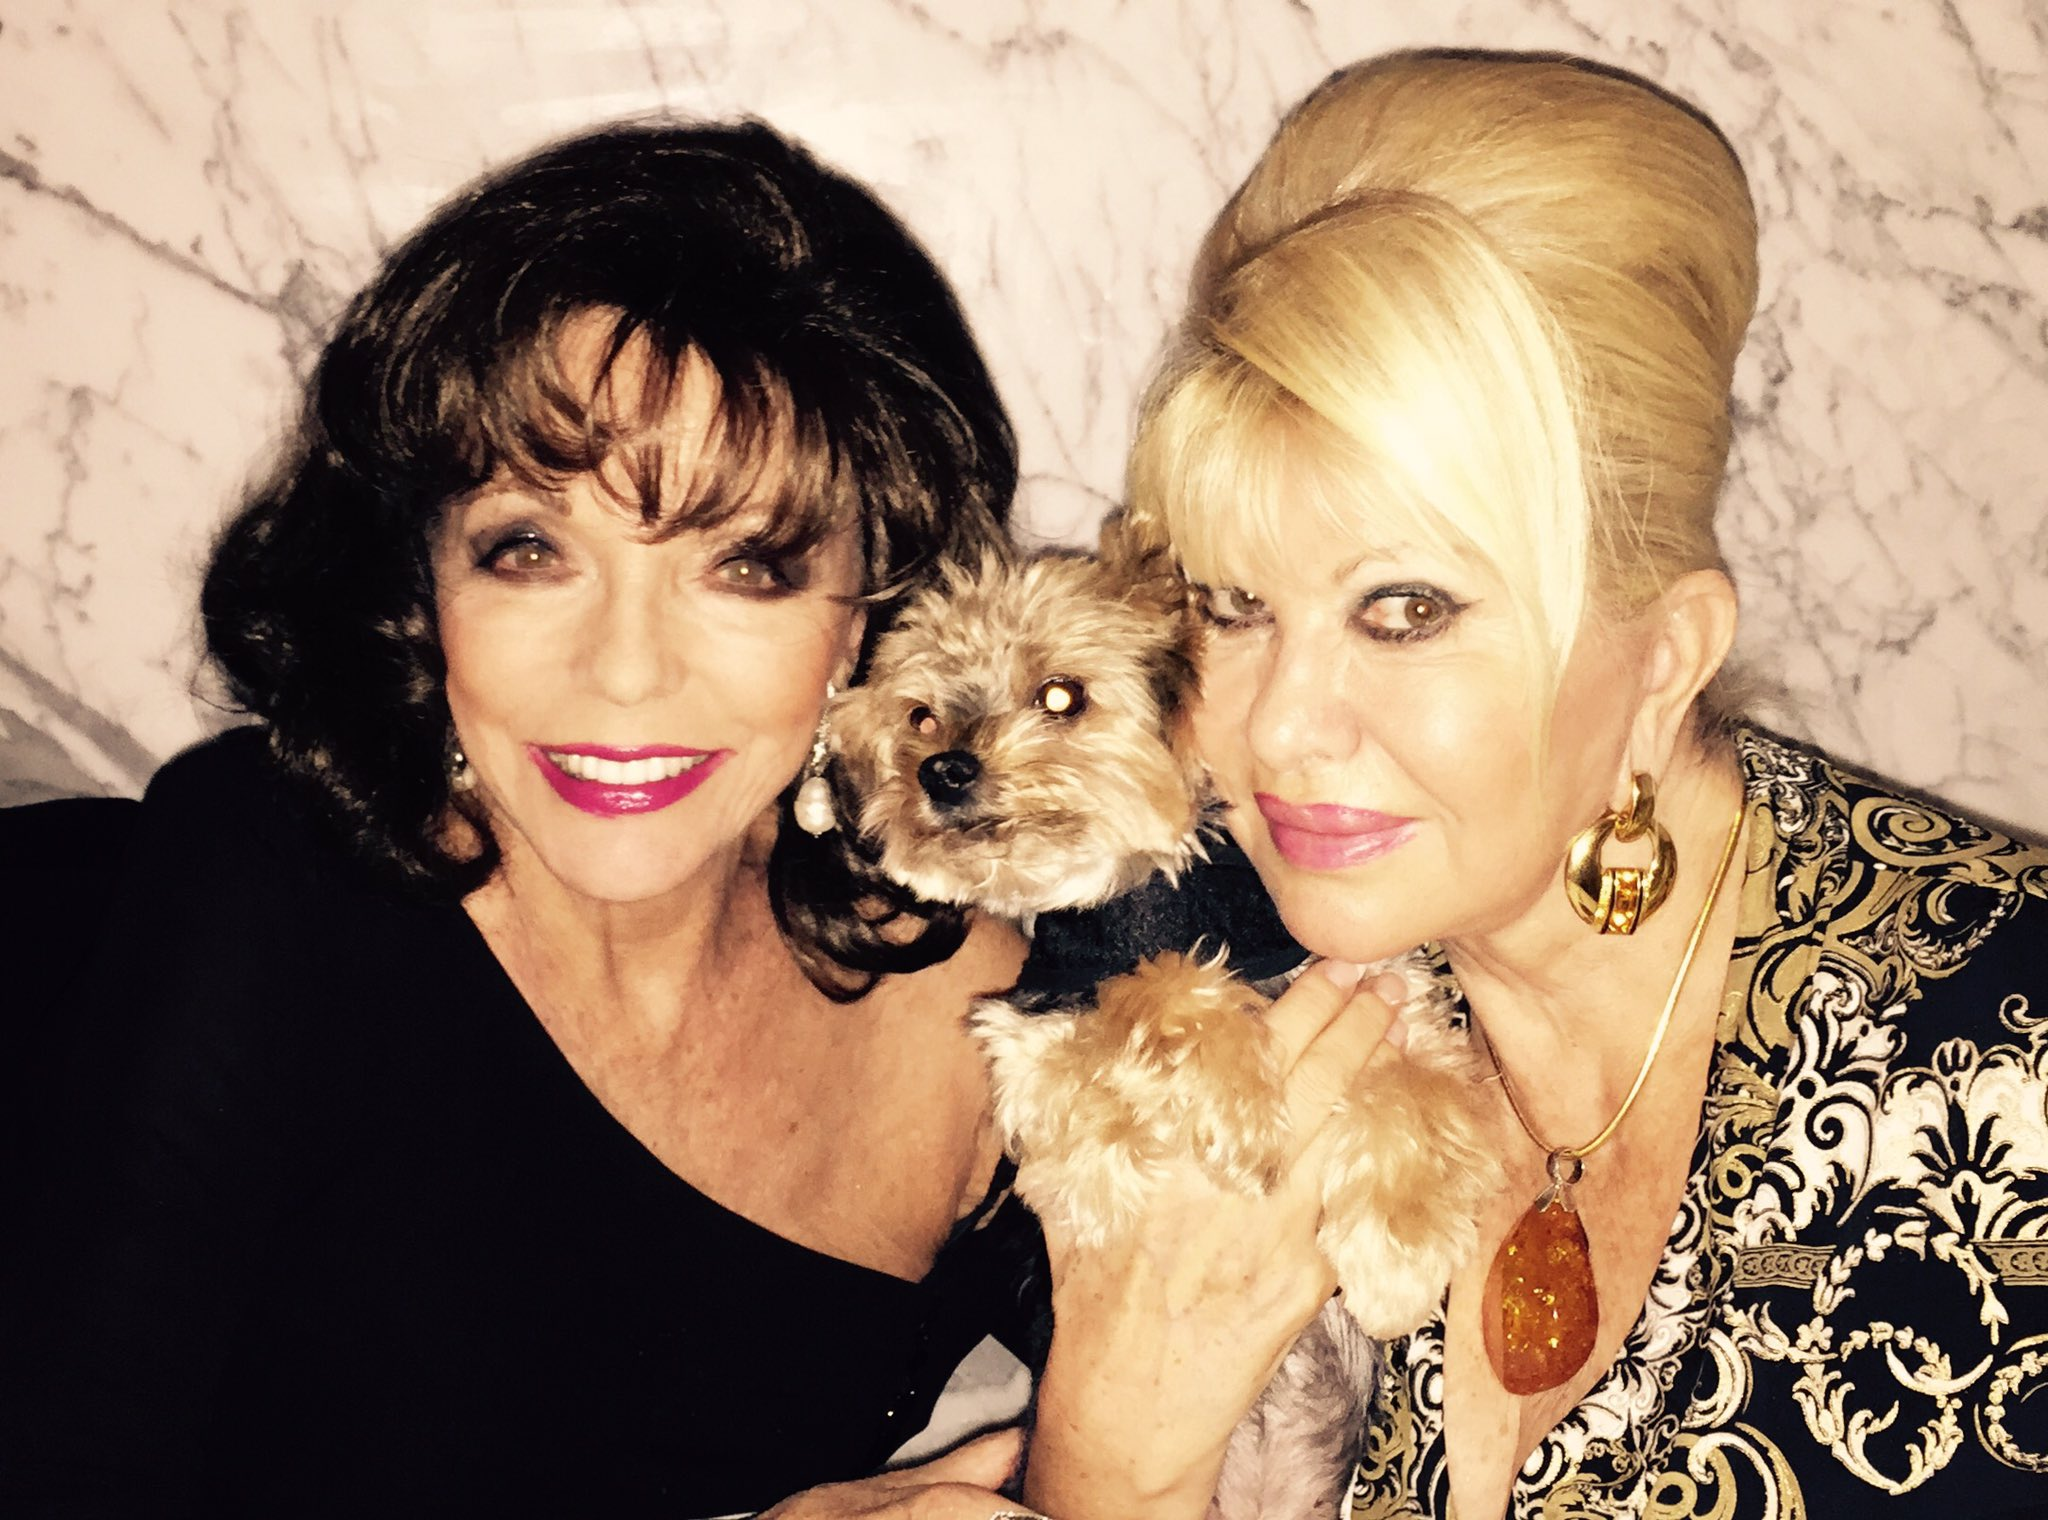 Amusing dinner with #Ivana and Tiger #puppies https://t.co/2vWcr9QGak